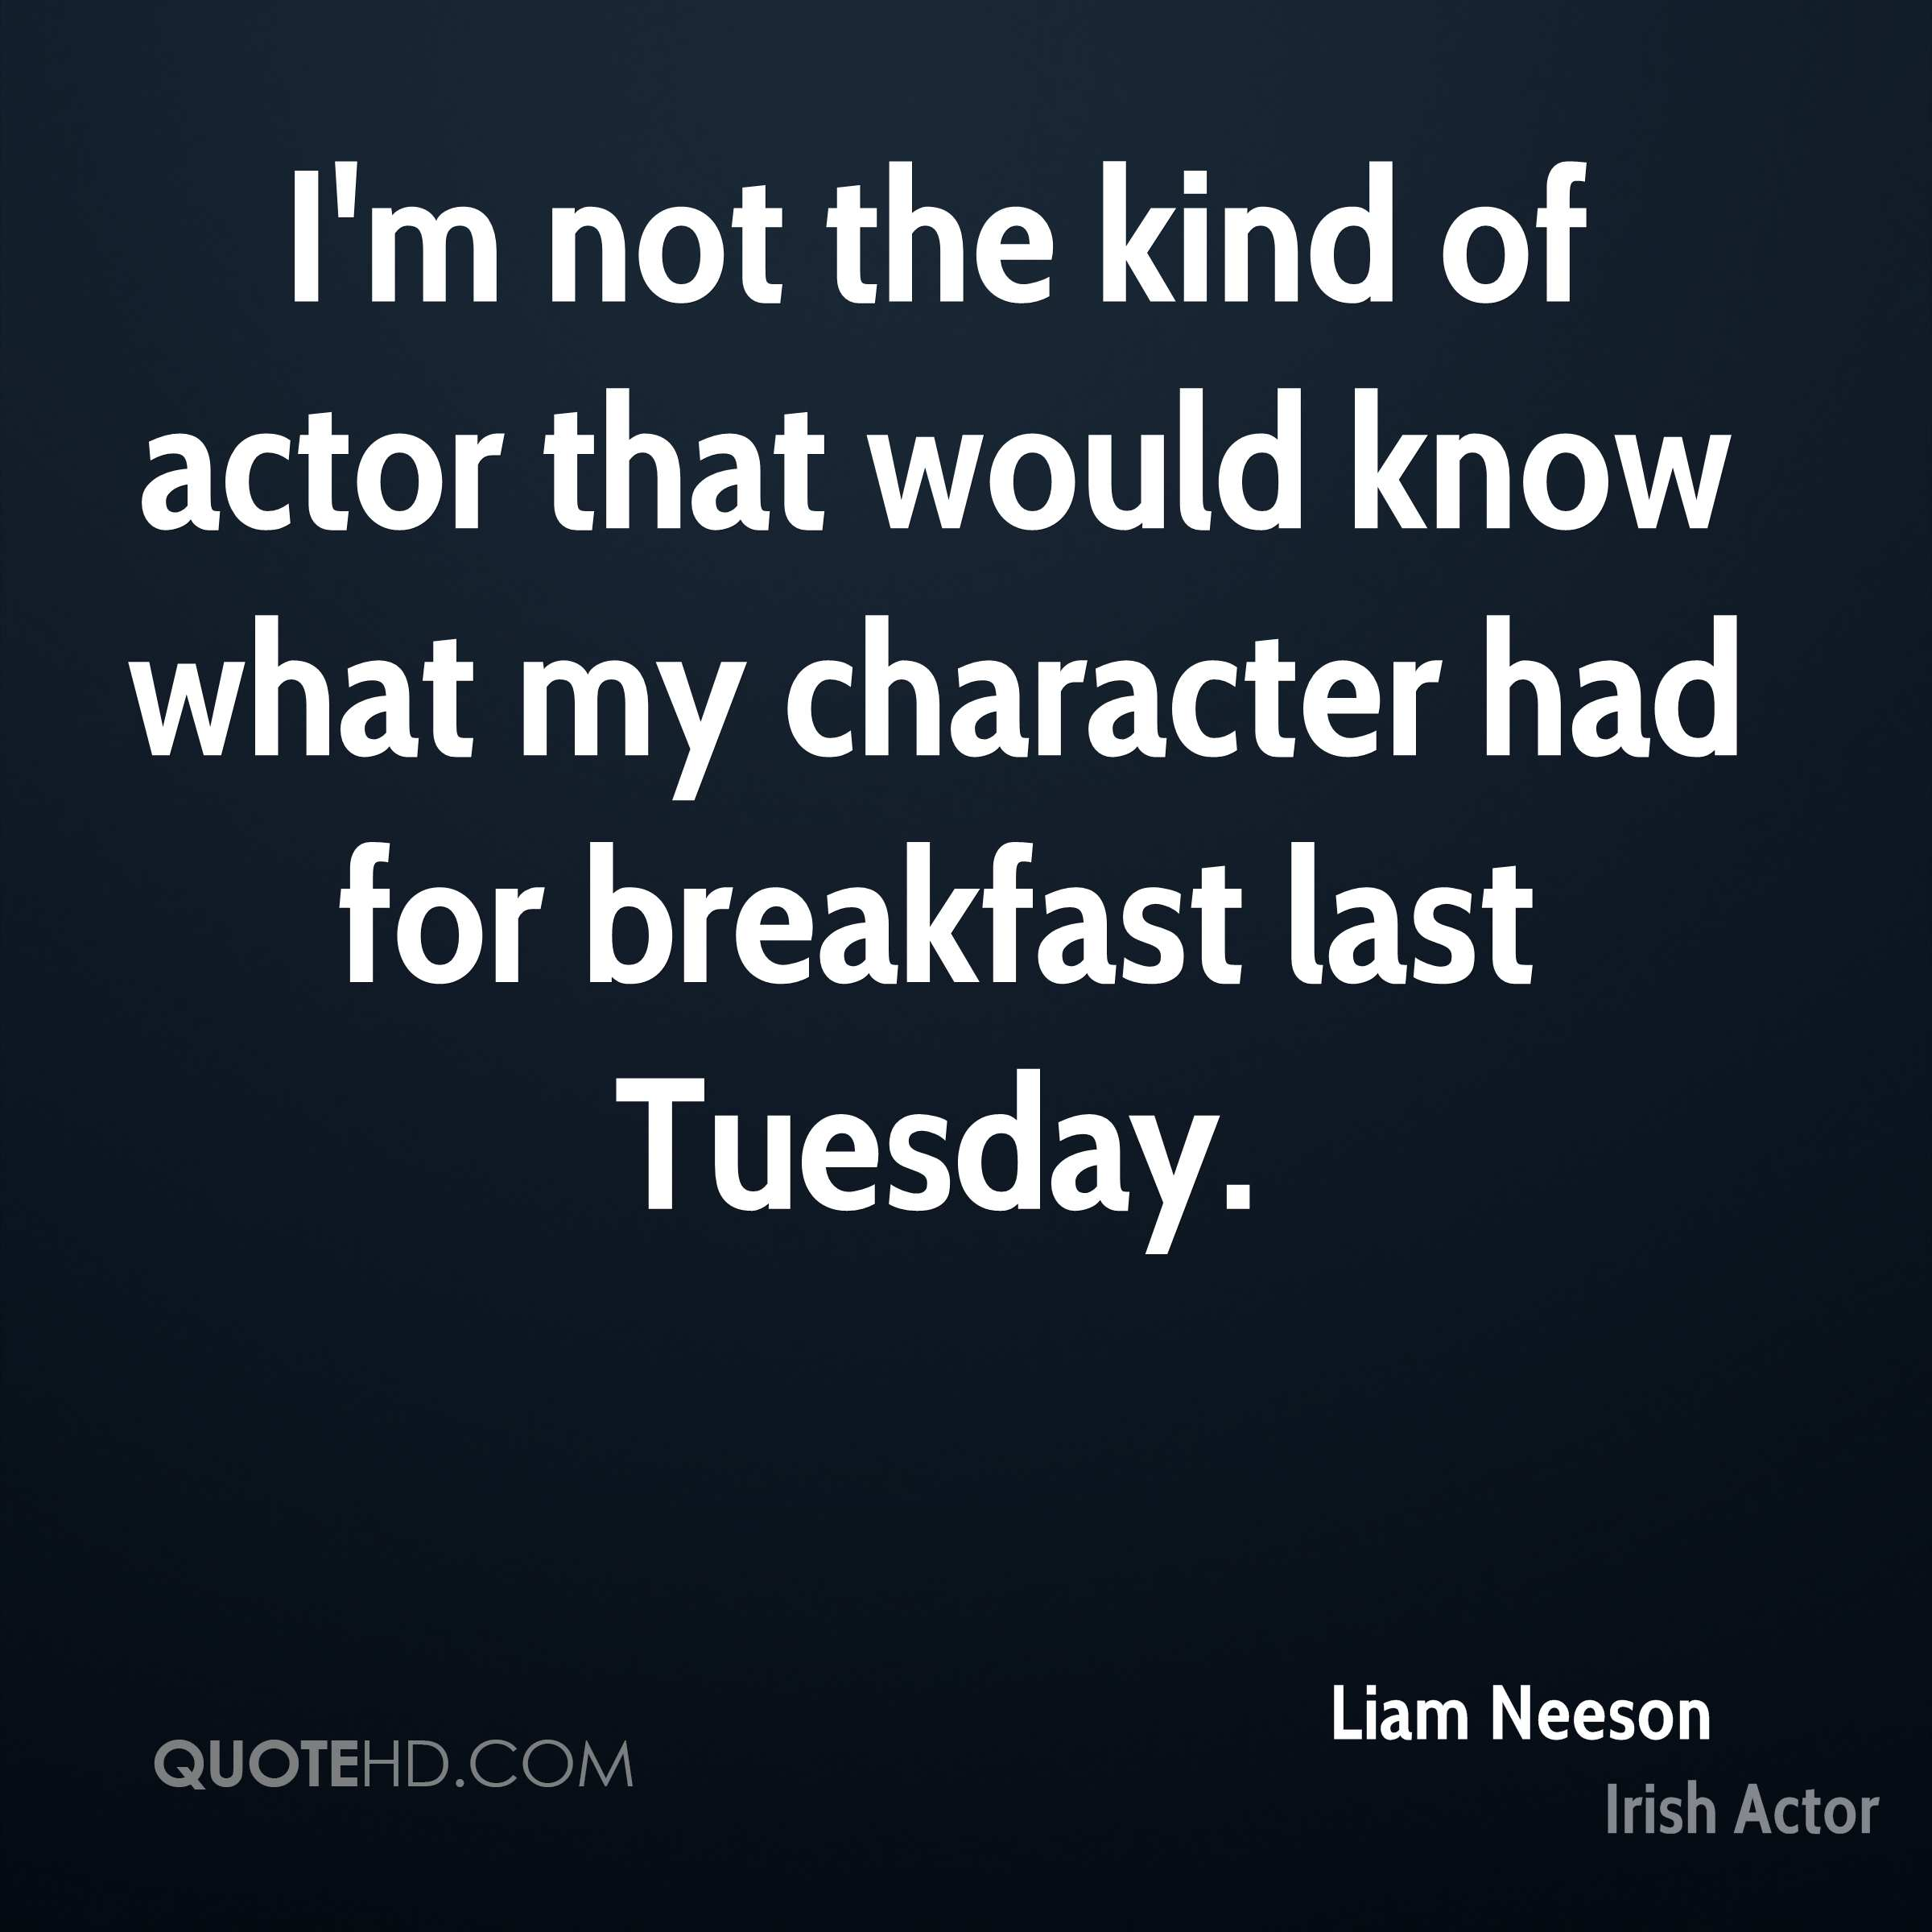 I'm not the kind of actor that would know what my character had for breakfast last Tuesday.